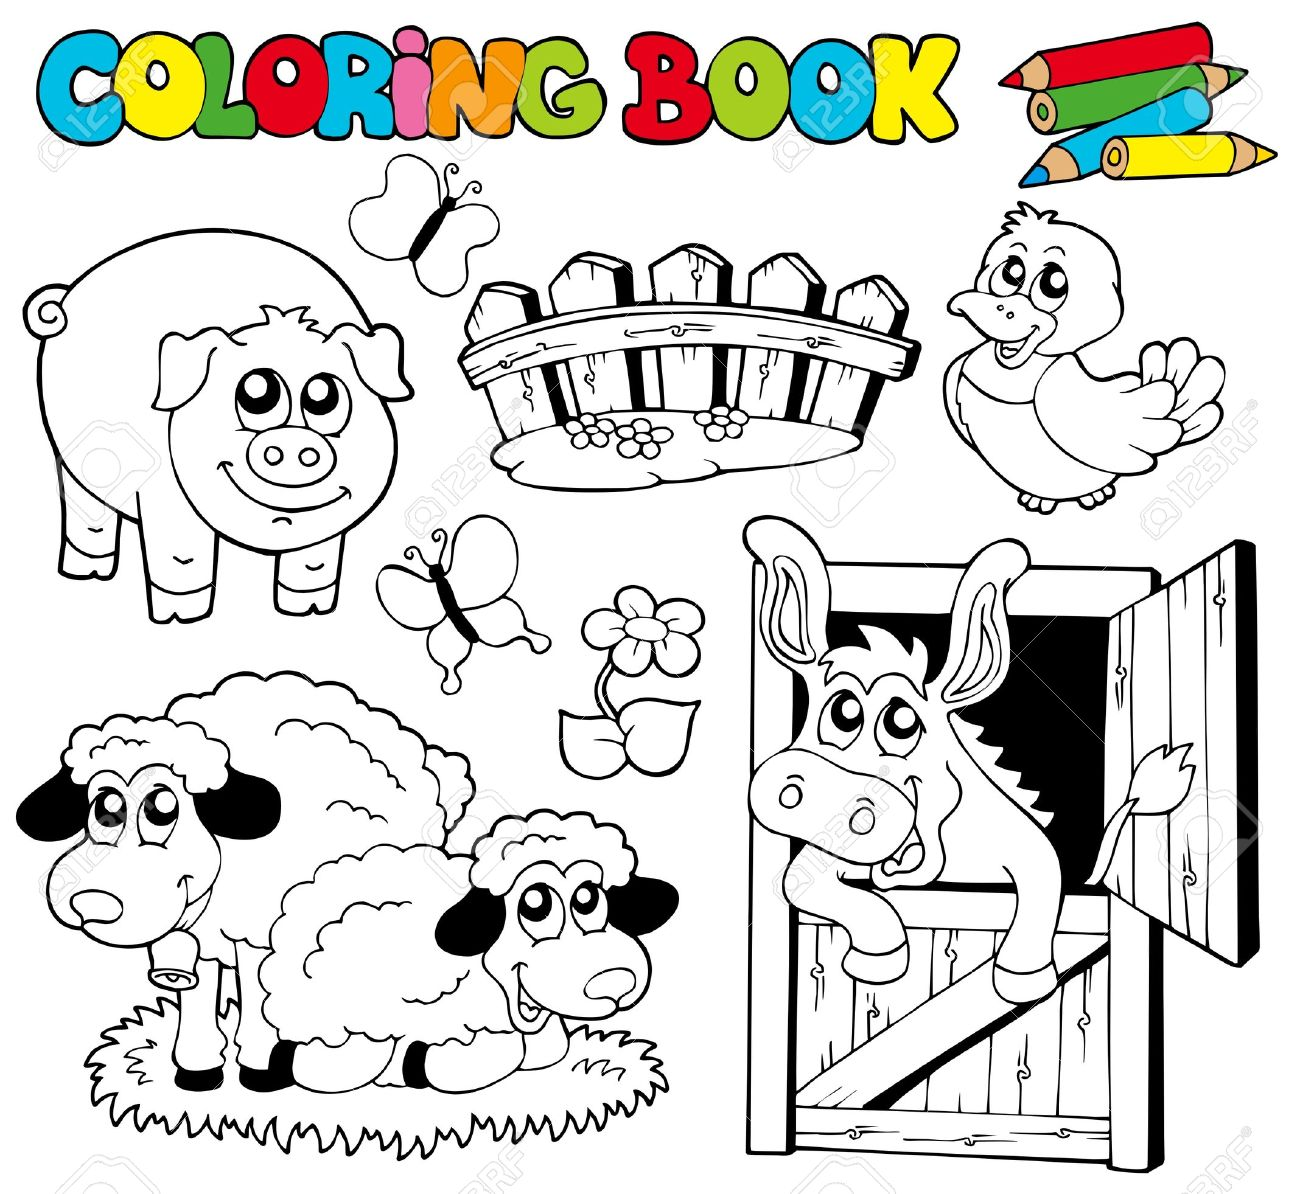 Coloring book with farm animals  - illustration. Stock Vector - 8145362